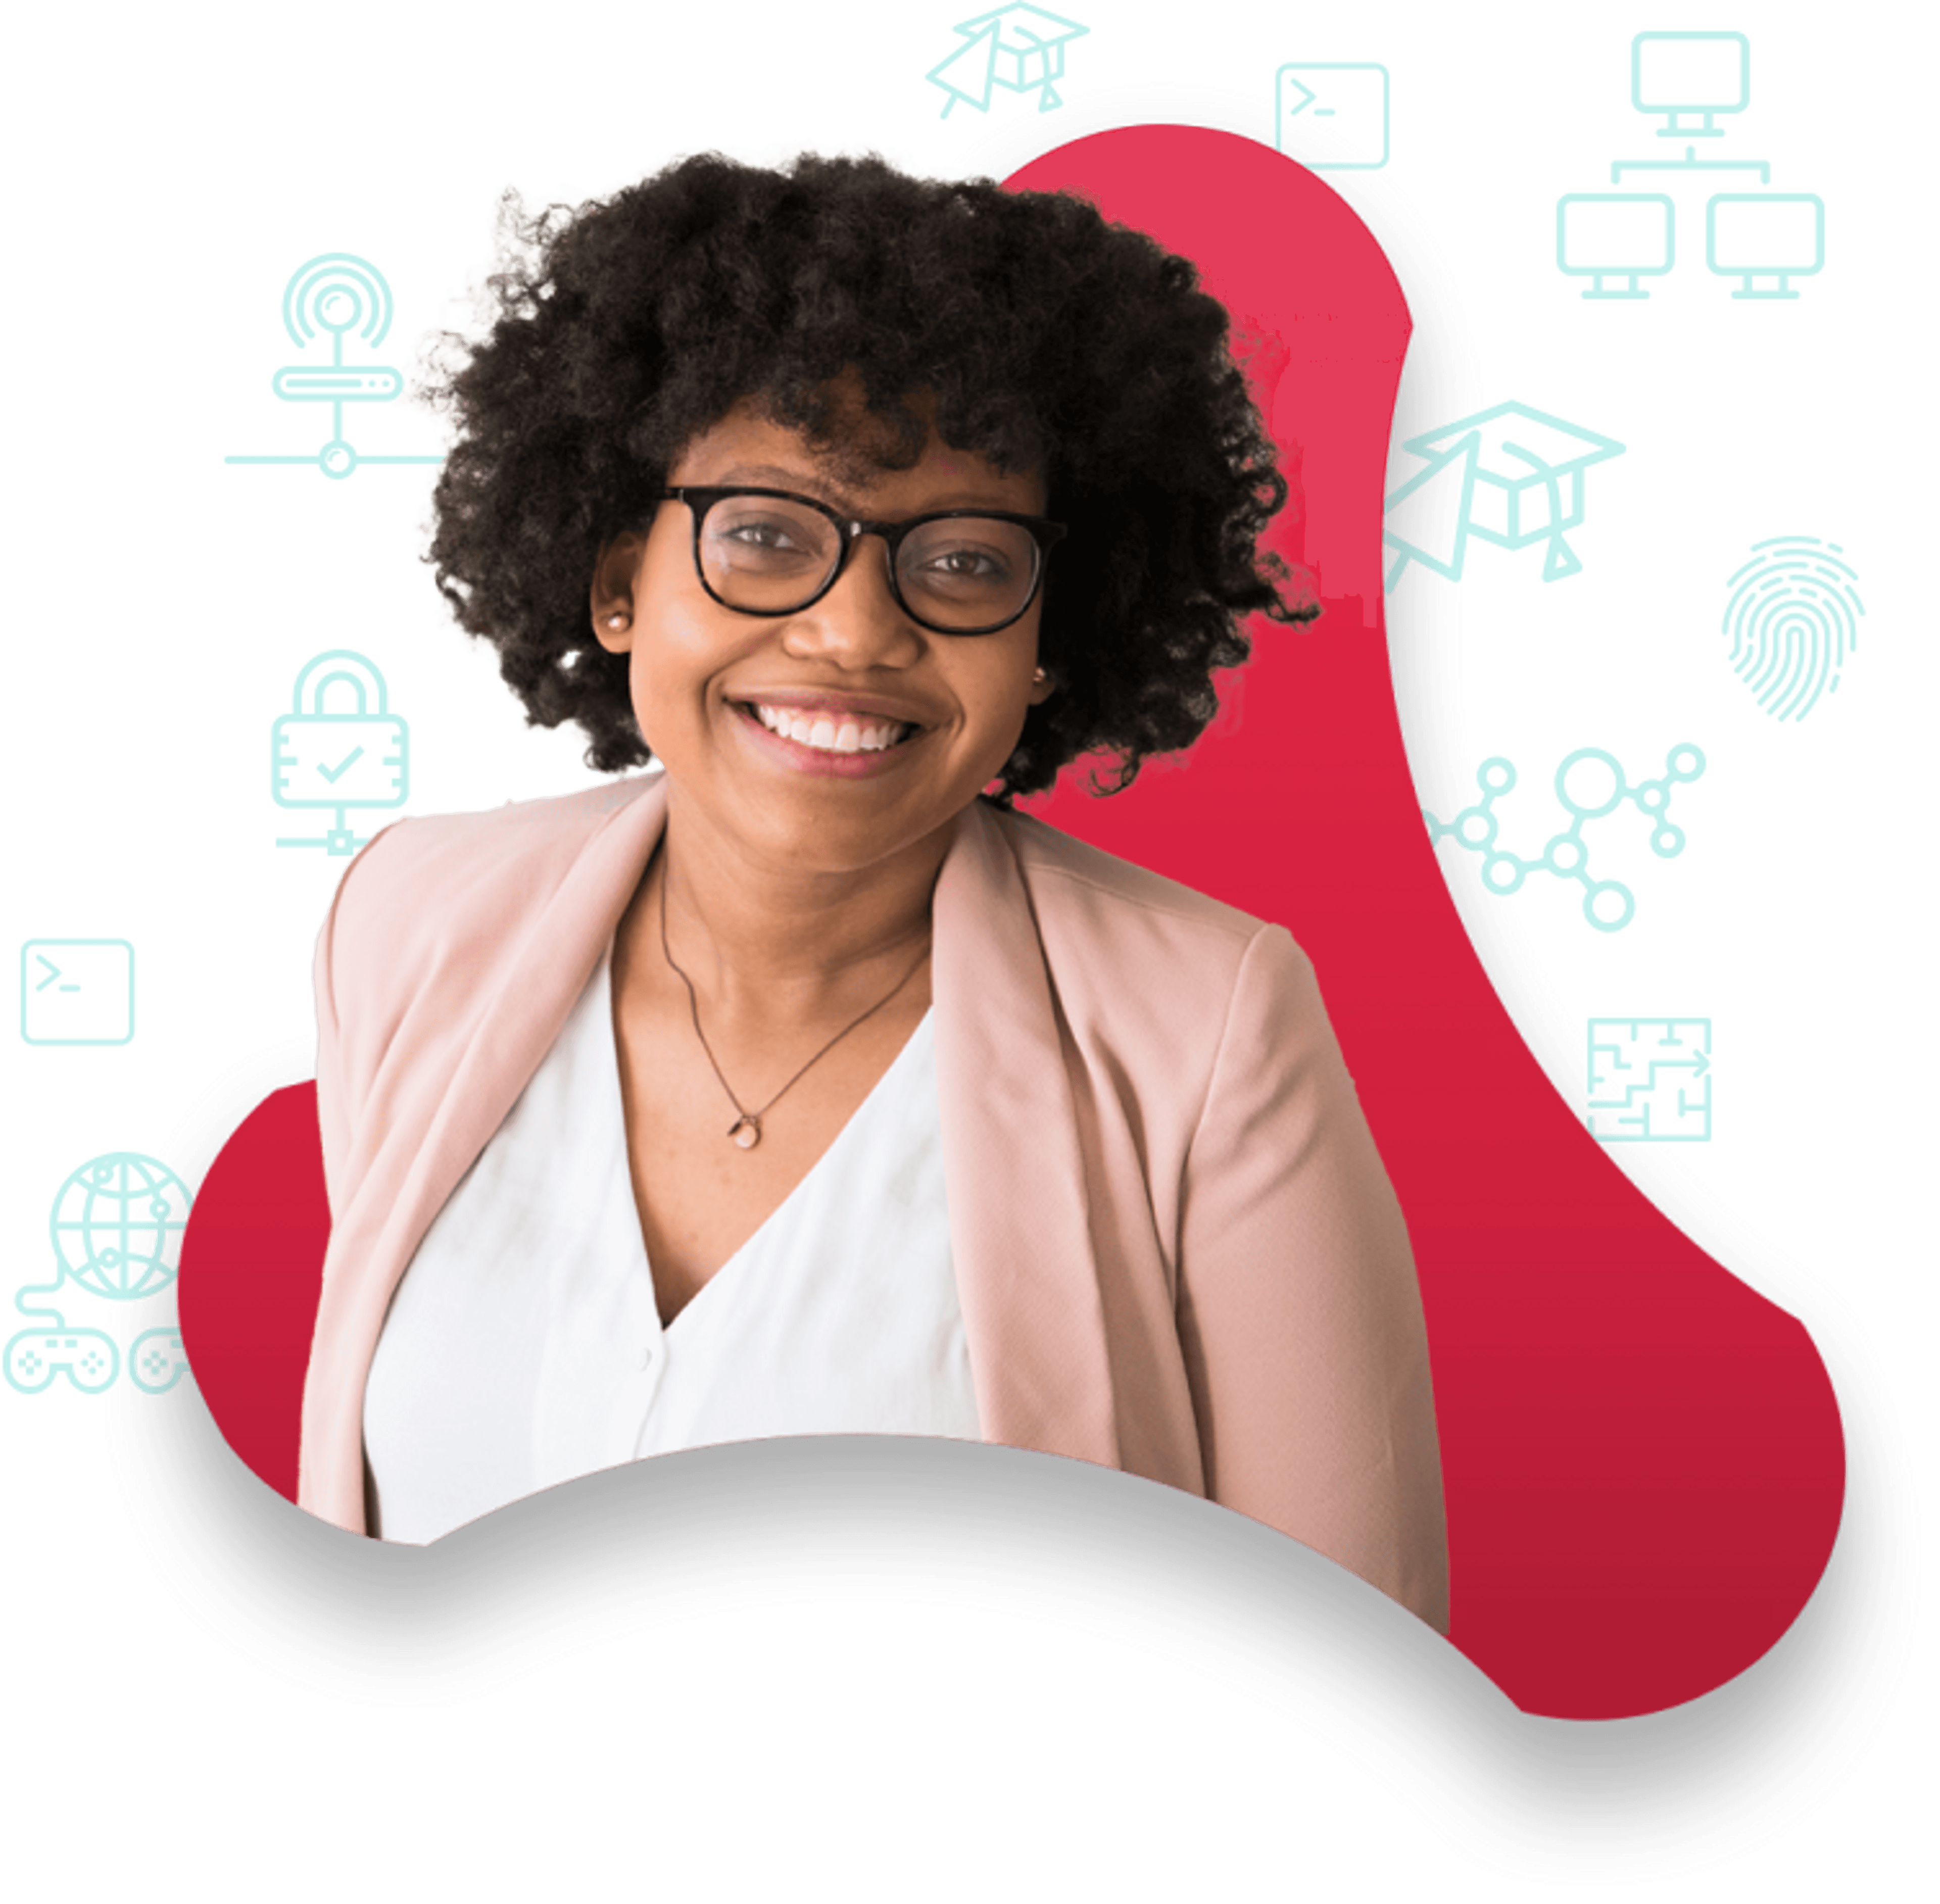 Gamified cyber learning cybersecurity education platform